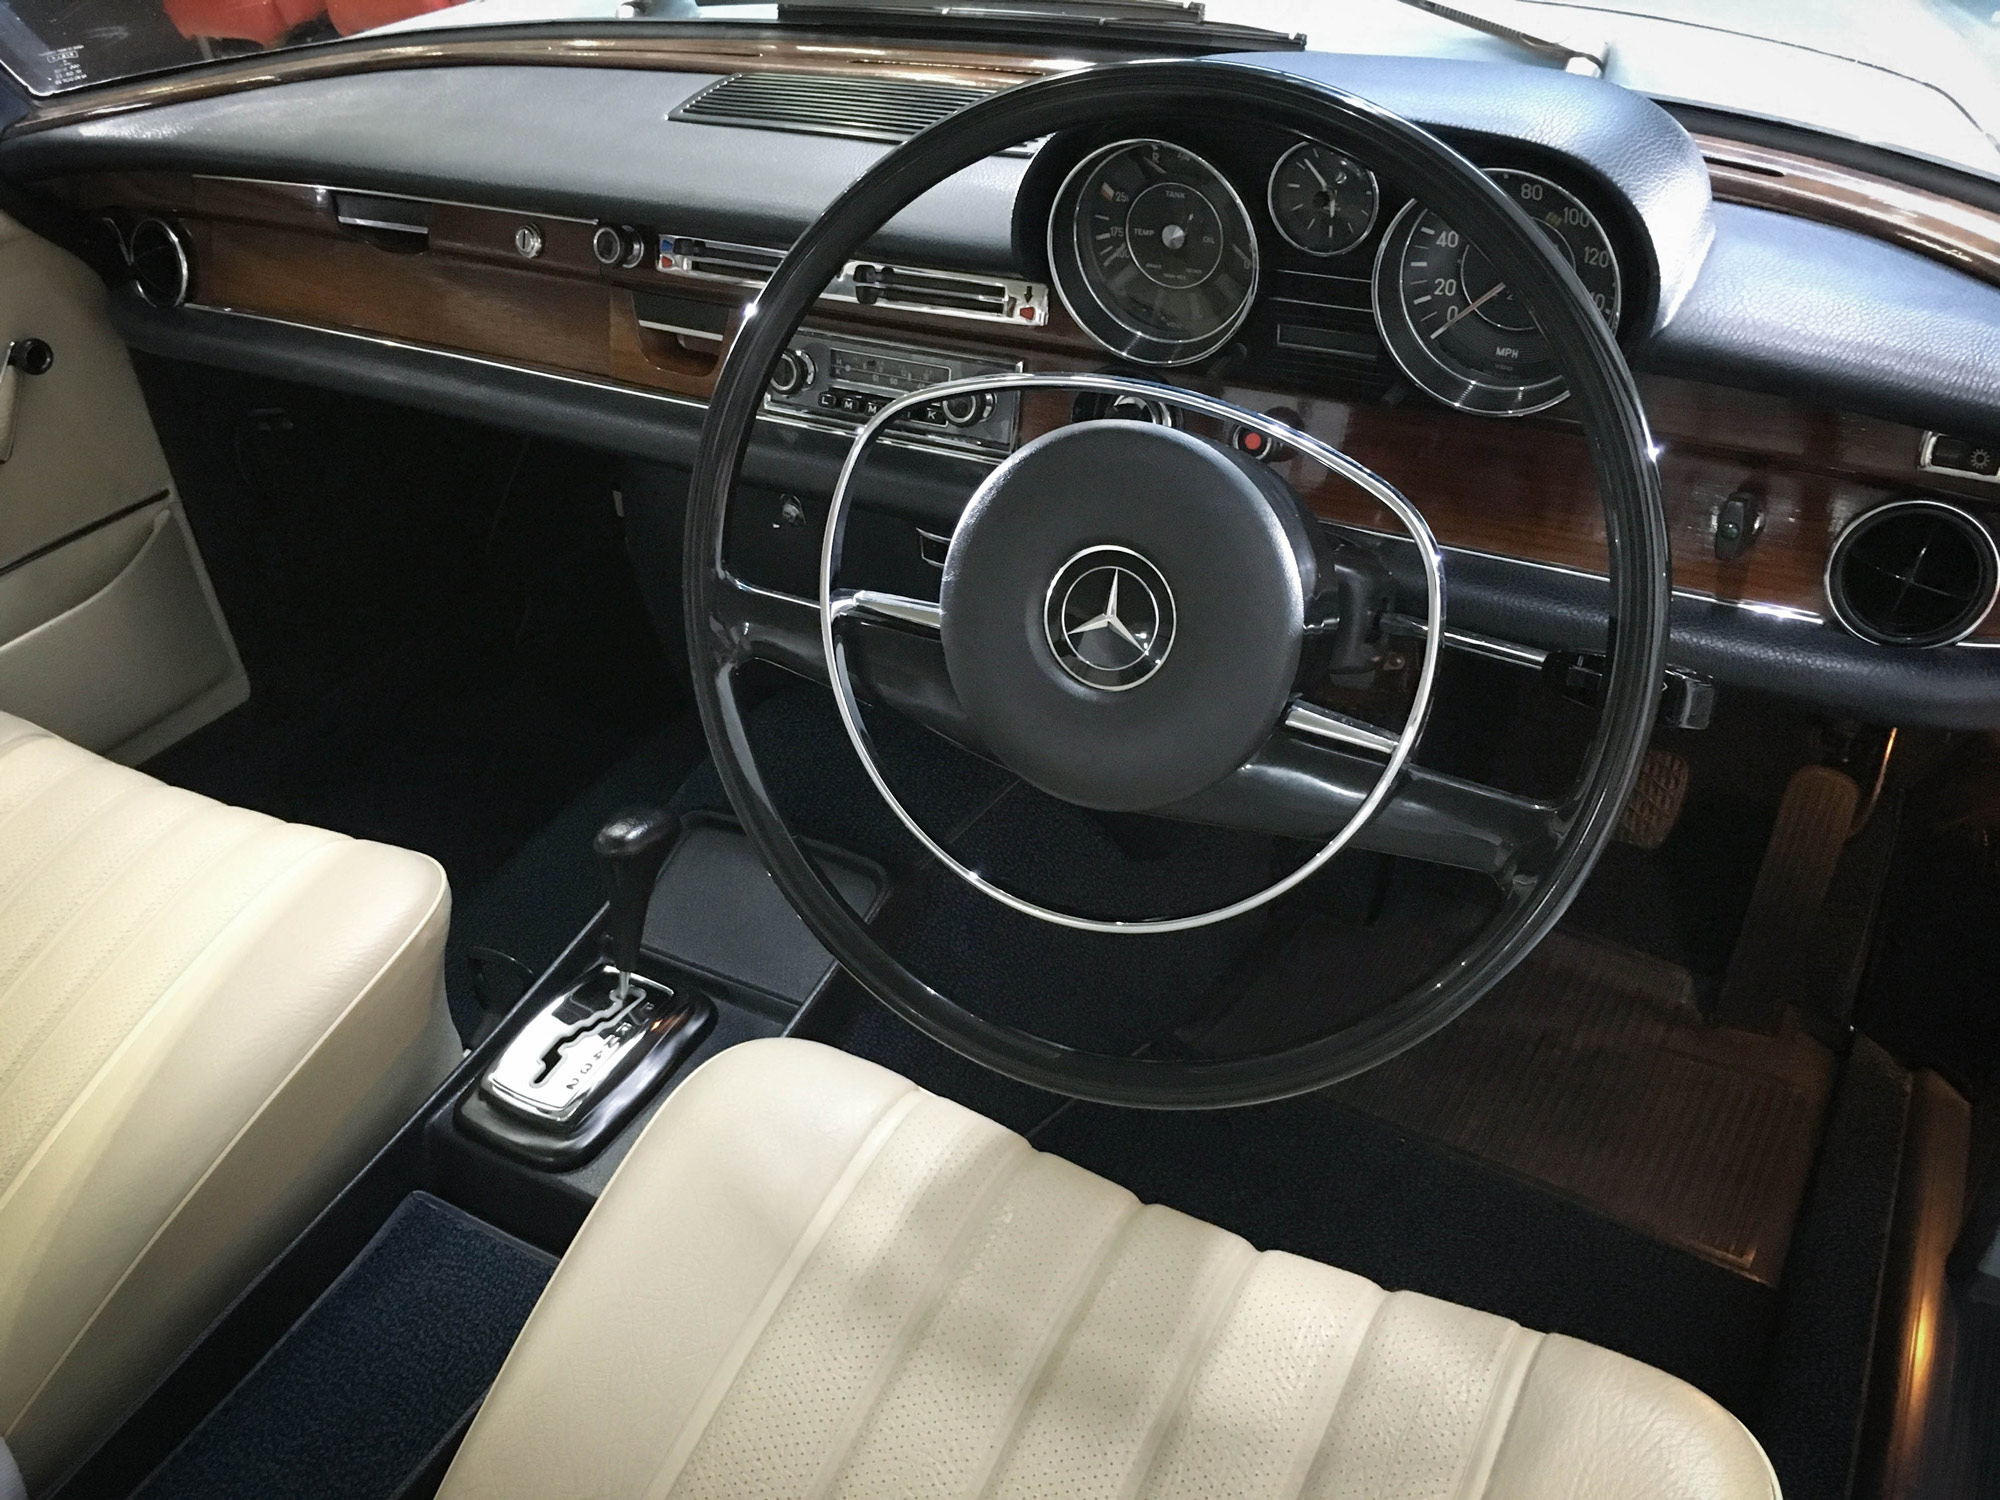 Mercedes_280se-driving-wheel